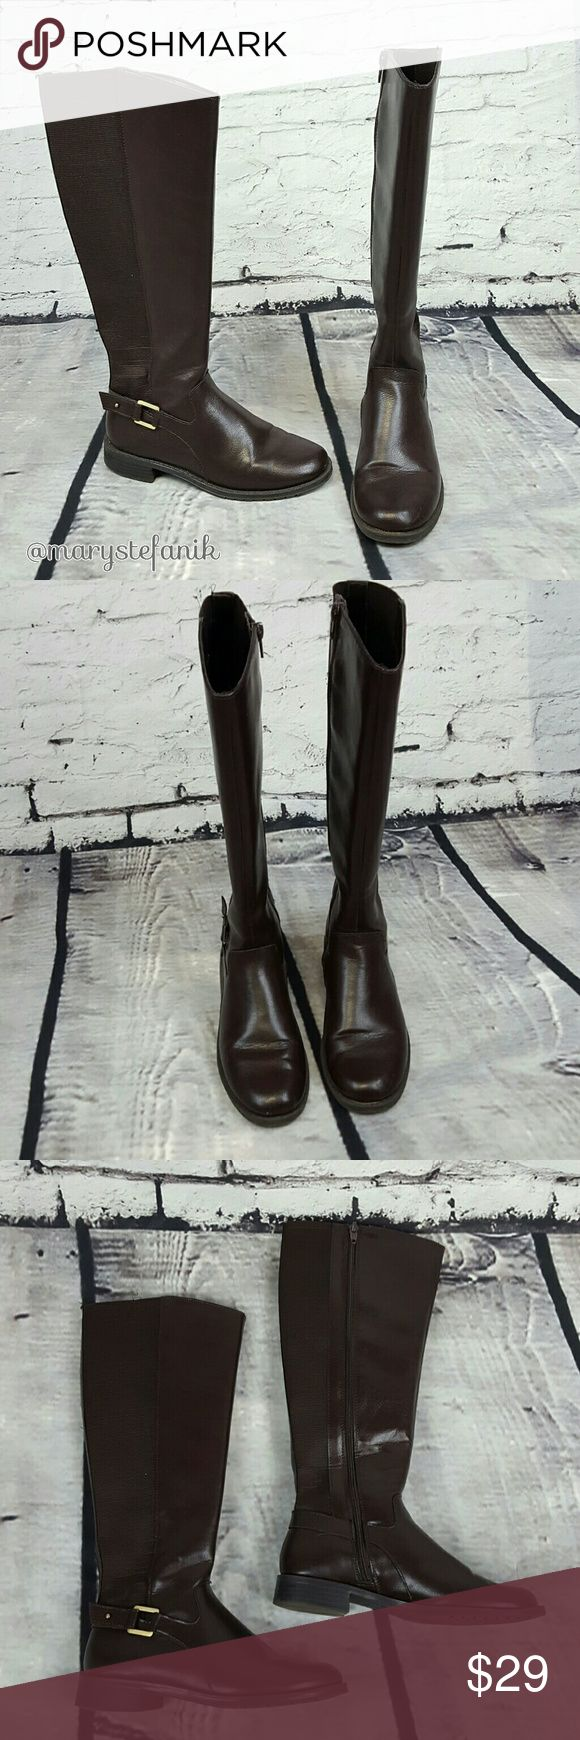 Easy Spirit Tall Chocolate Brown Riding Boots 5 Easy Spirit Tall Chocolate Brown Riding Boots size 5 in excellent used condition. Man made material. Comfy and stylish!  Please let me know if you have any questions. Happy Poshing! Easy Spirit Shoes Winter & Rain Boots